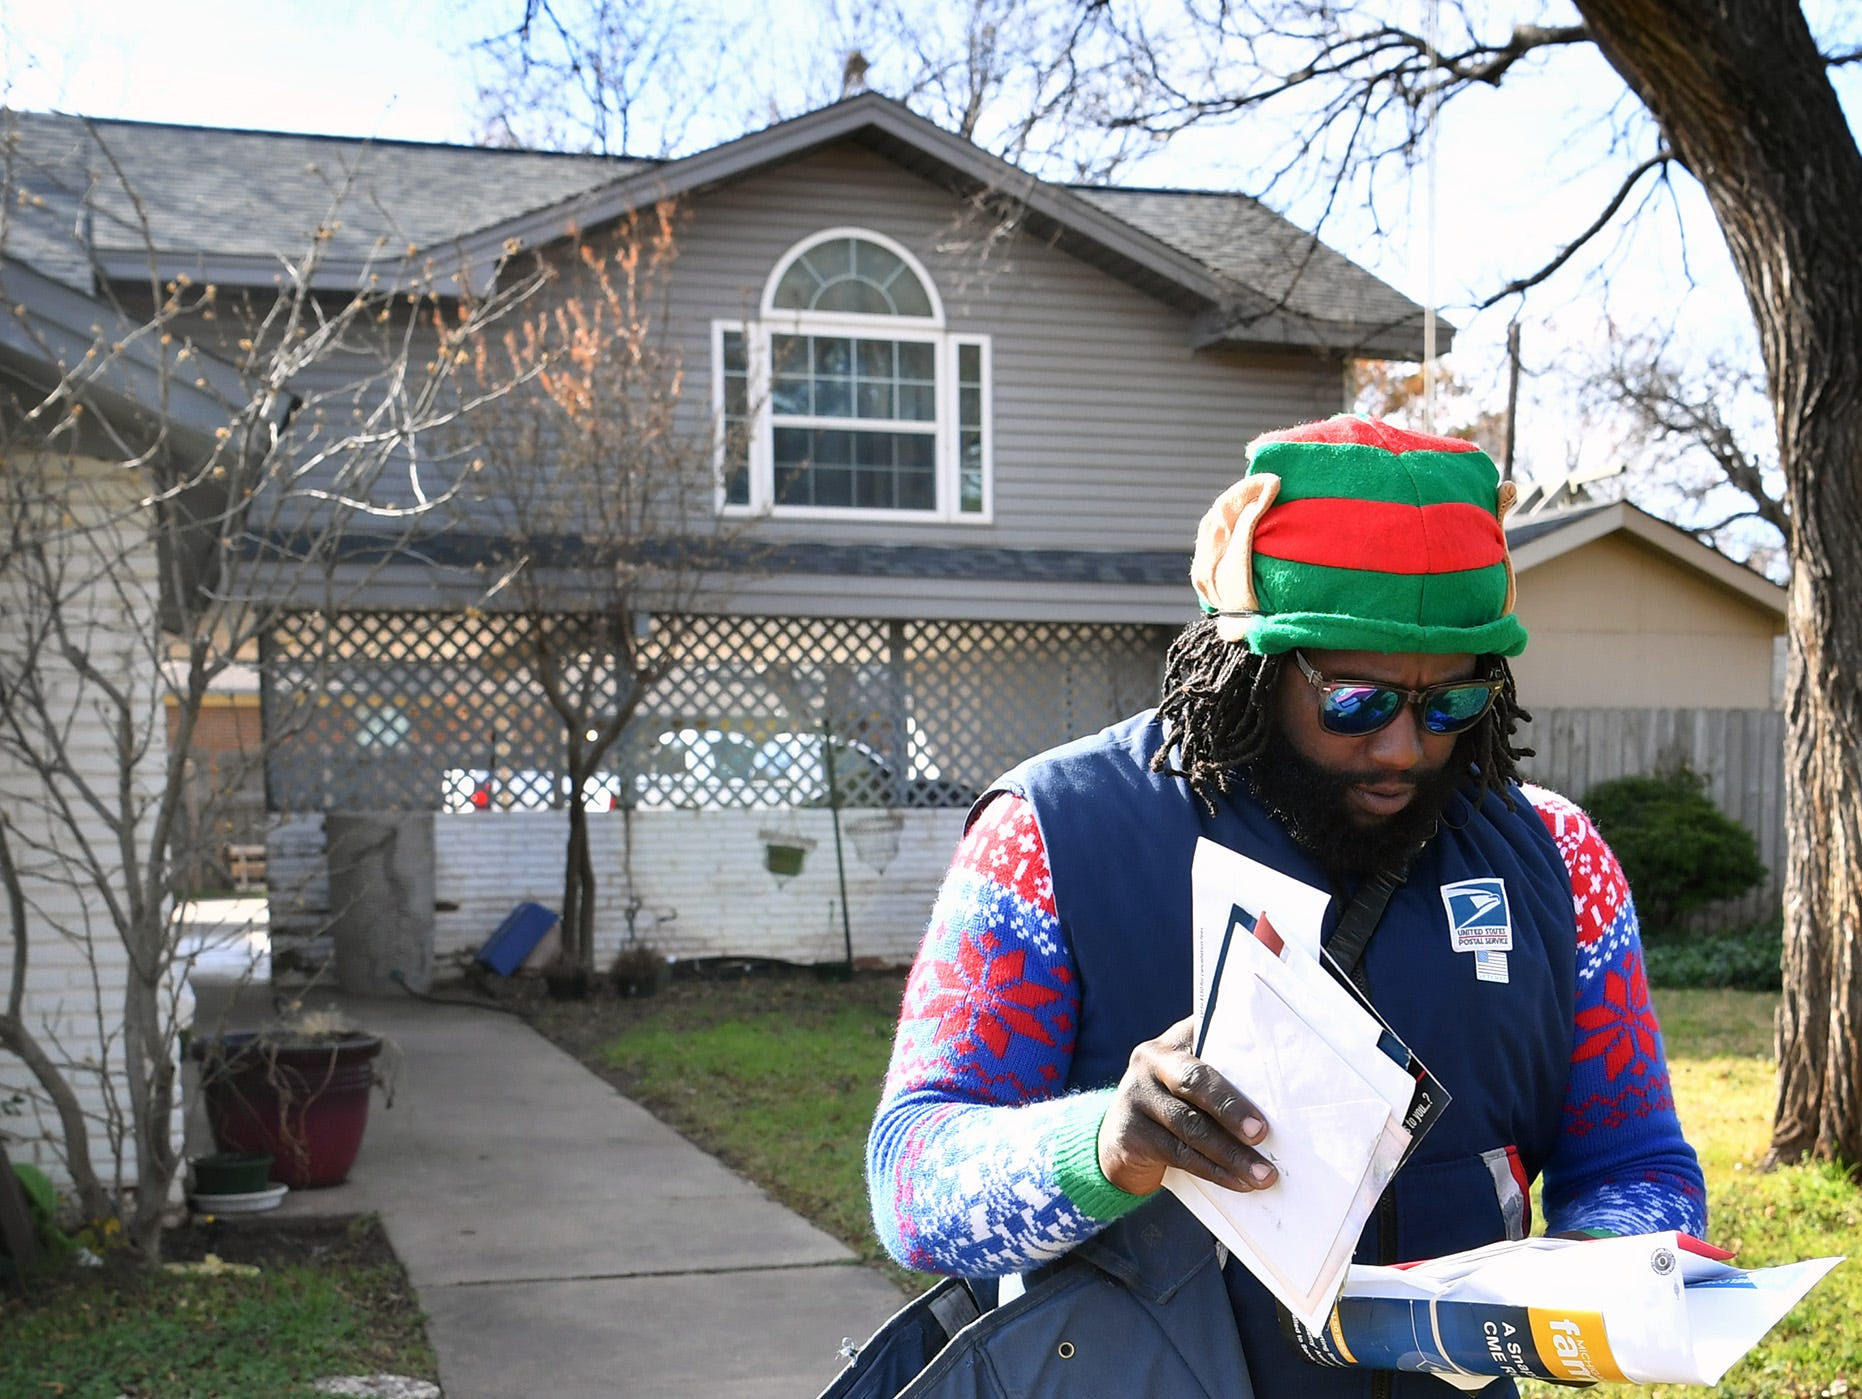 Christmas sweaters and elf hats are just a few things that help mail carrier Joe Forbins spread holiday cheer while walking his mail route each day.